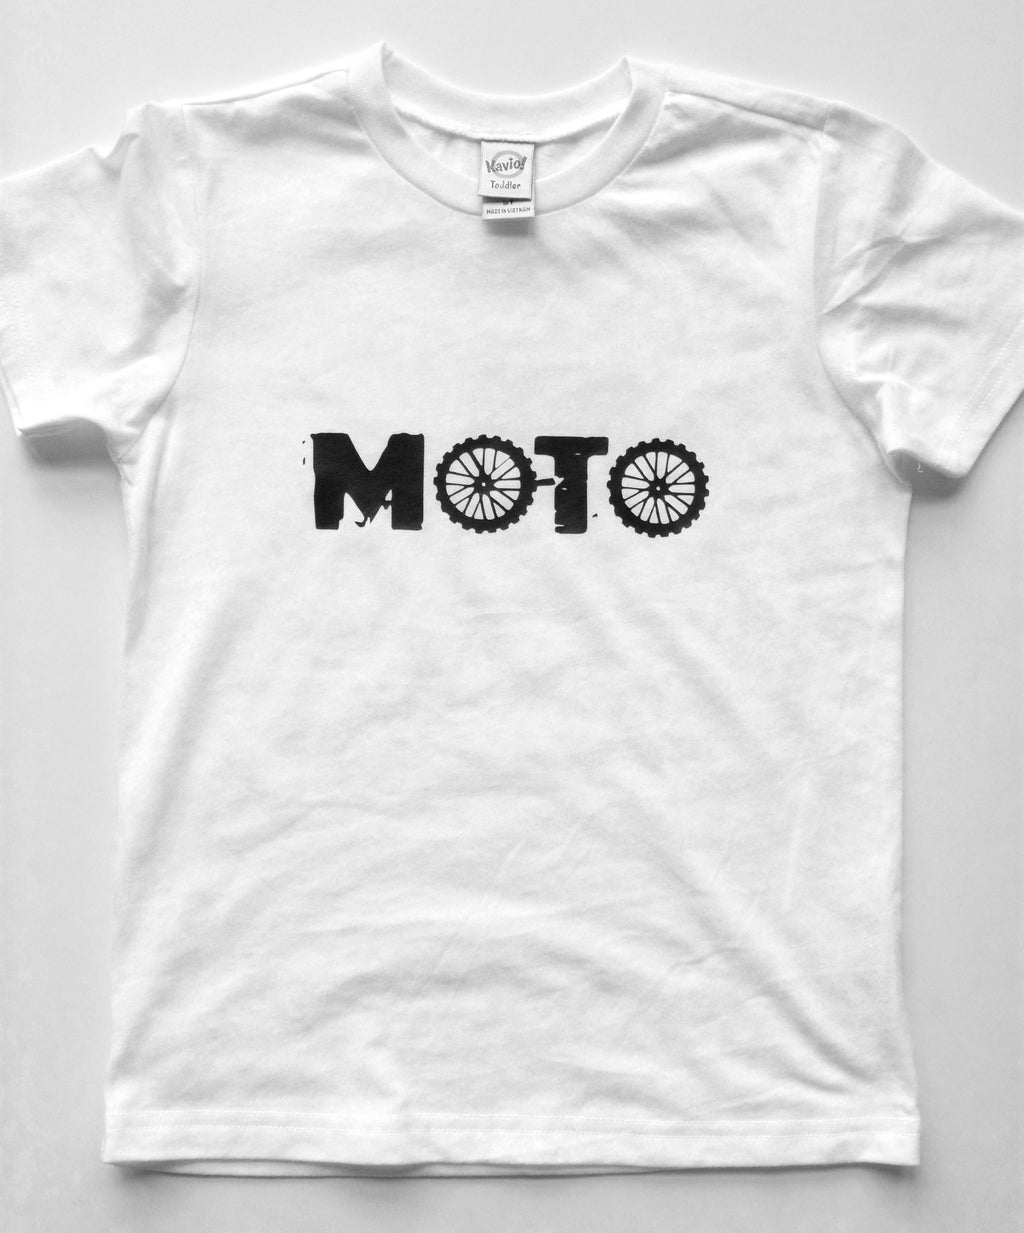 UNISEX YOUTH TEE | MOTO | White